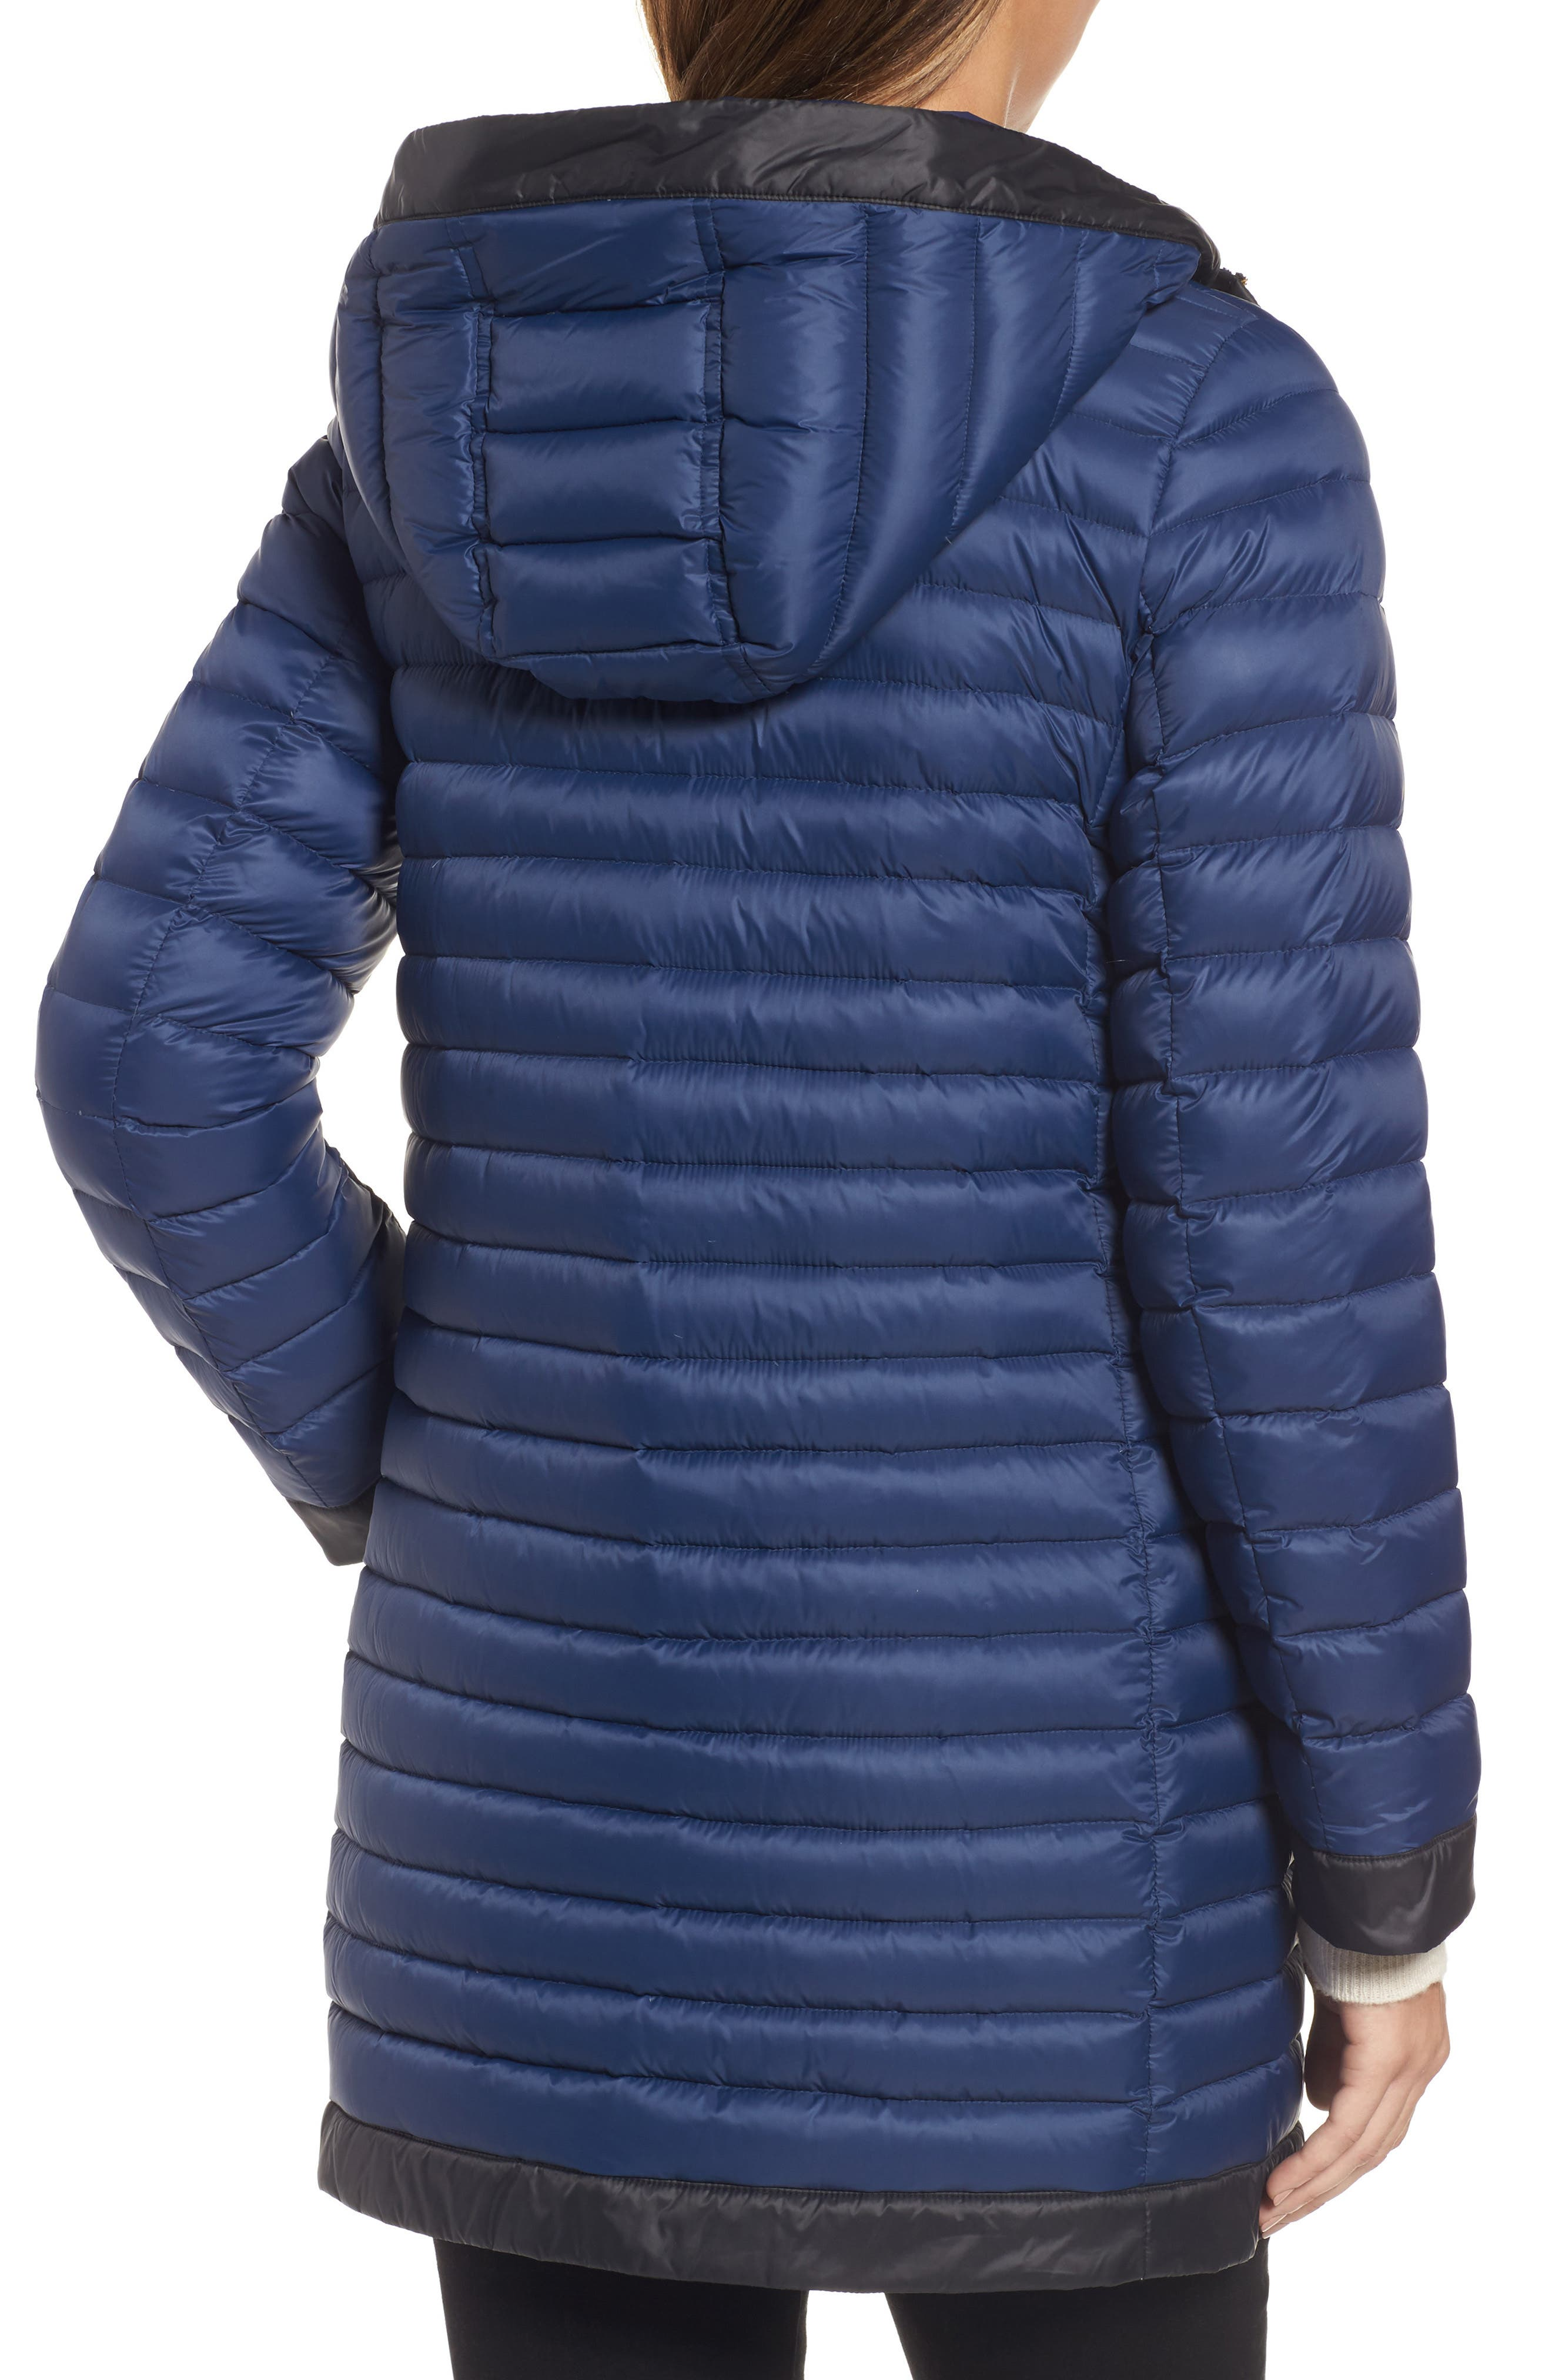 contrast trim hooded puffer coat,                             Alternate thumbnail 2, color,                             Rich Navy/ Black